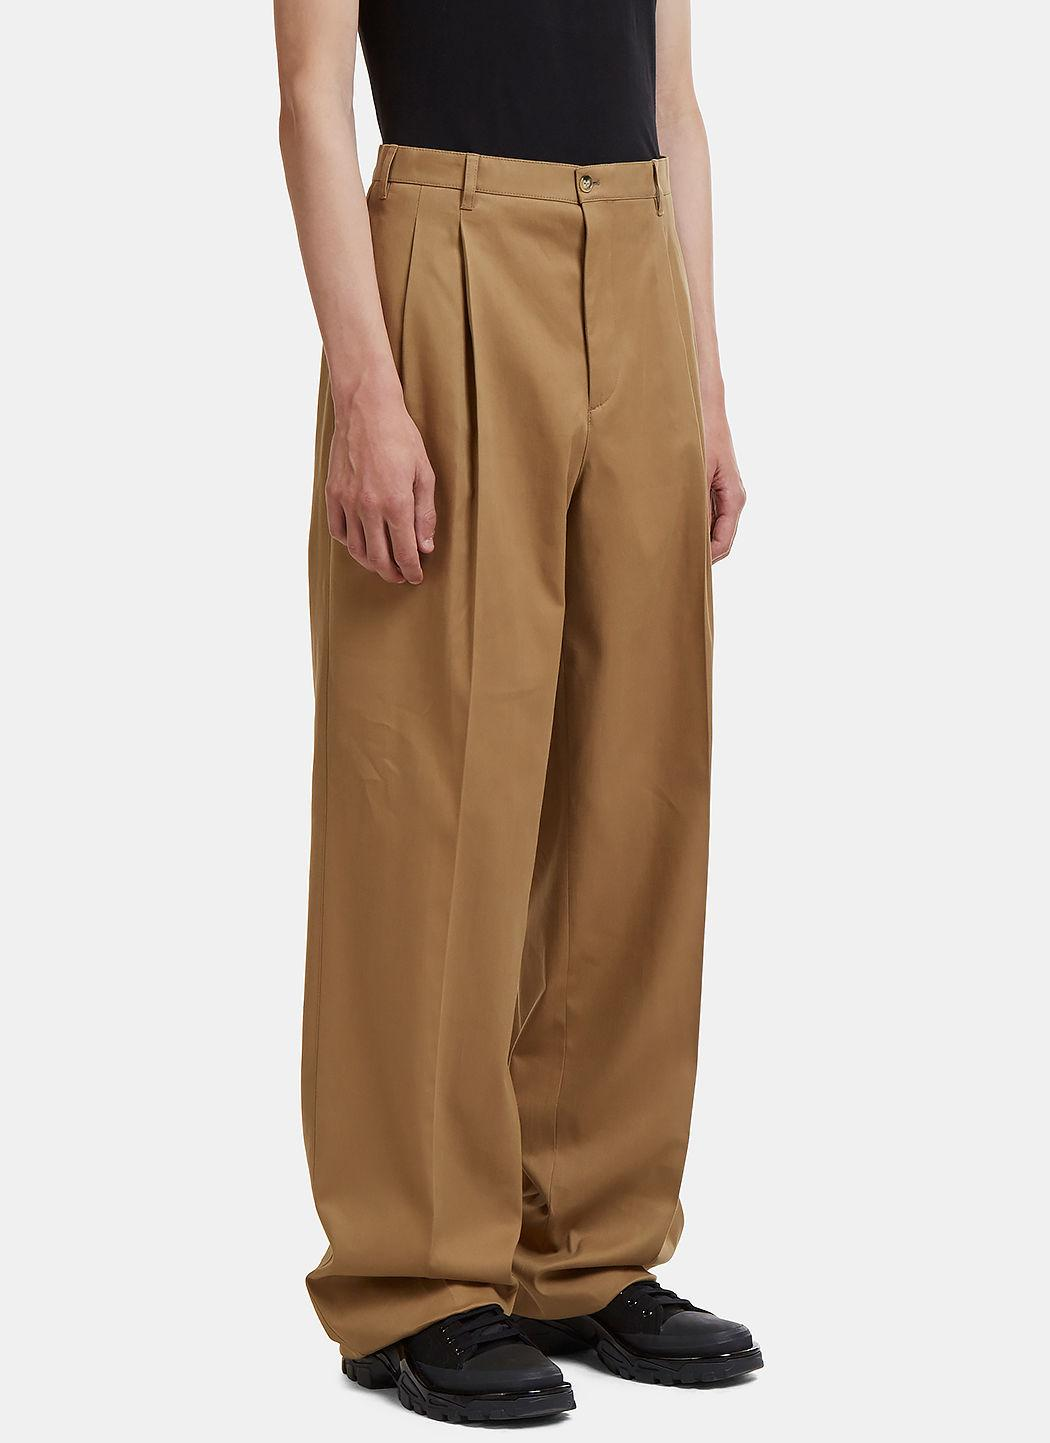 Raf Simons Pleated Duct Tape Chinos In Beige